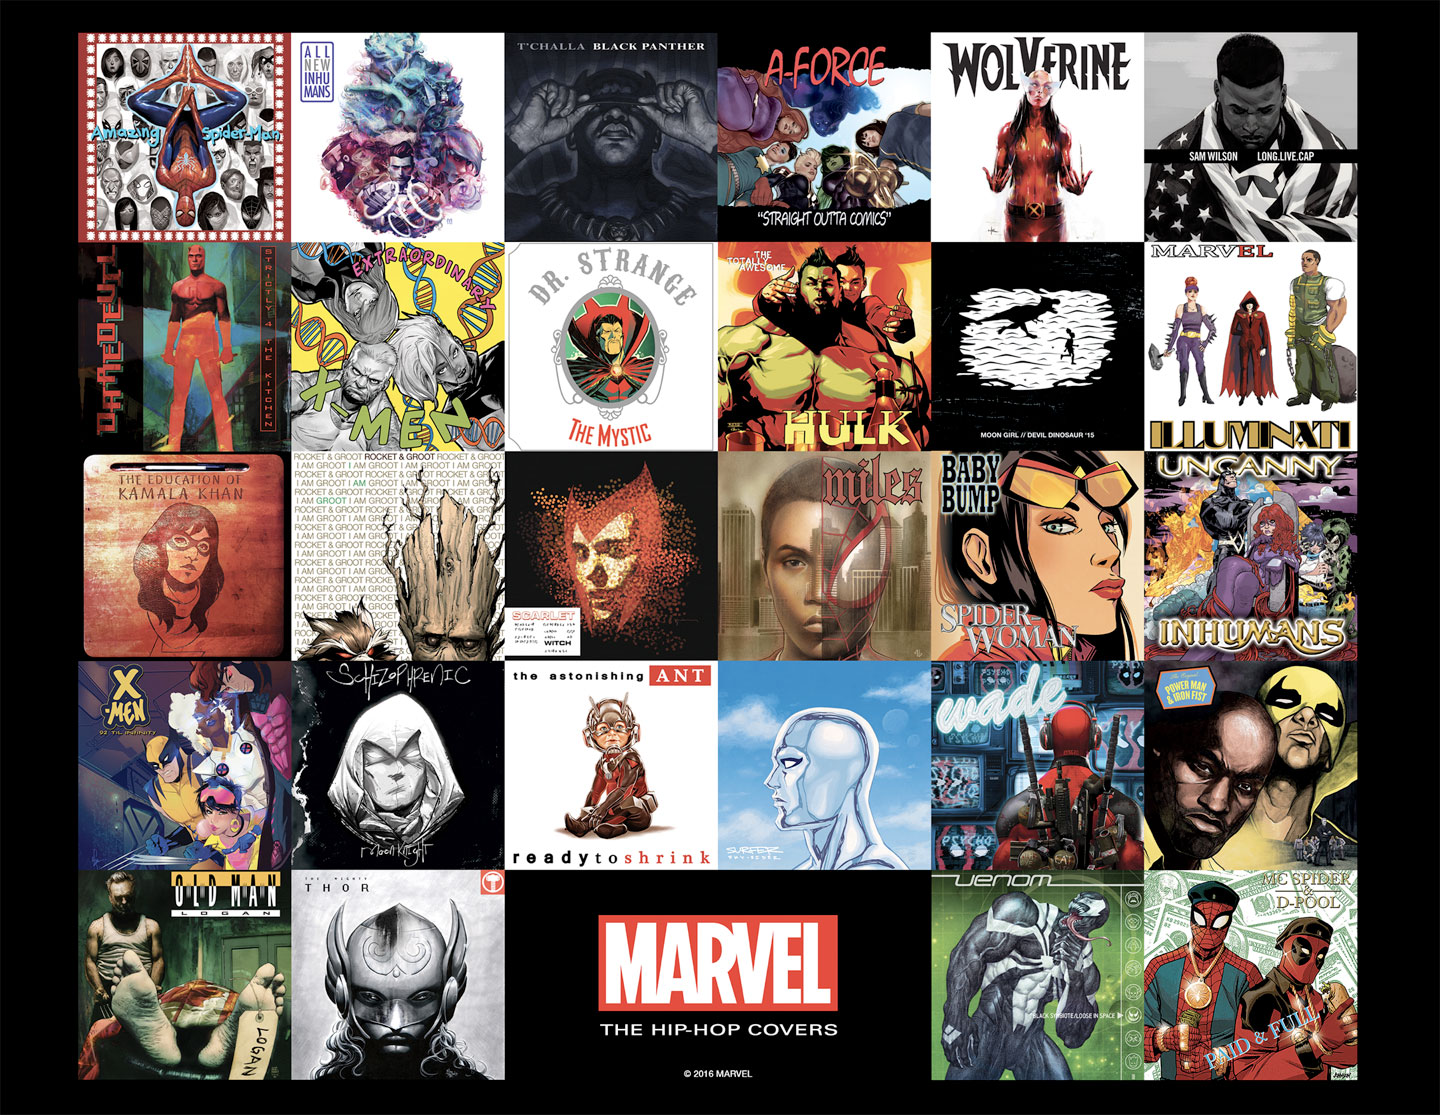 Marvel_The_Hip-Hop_Covers_Poster.jpg